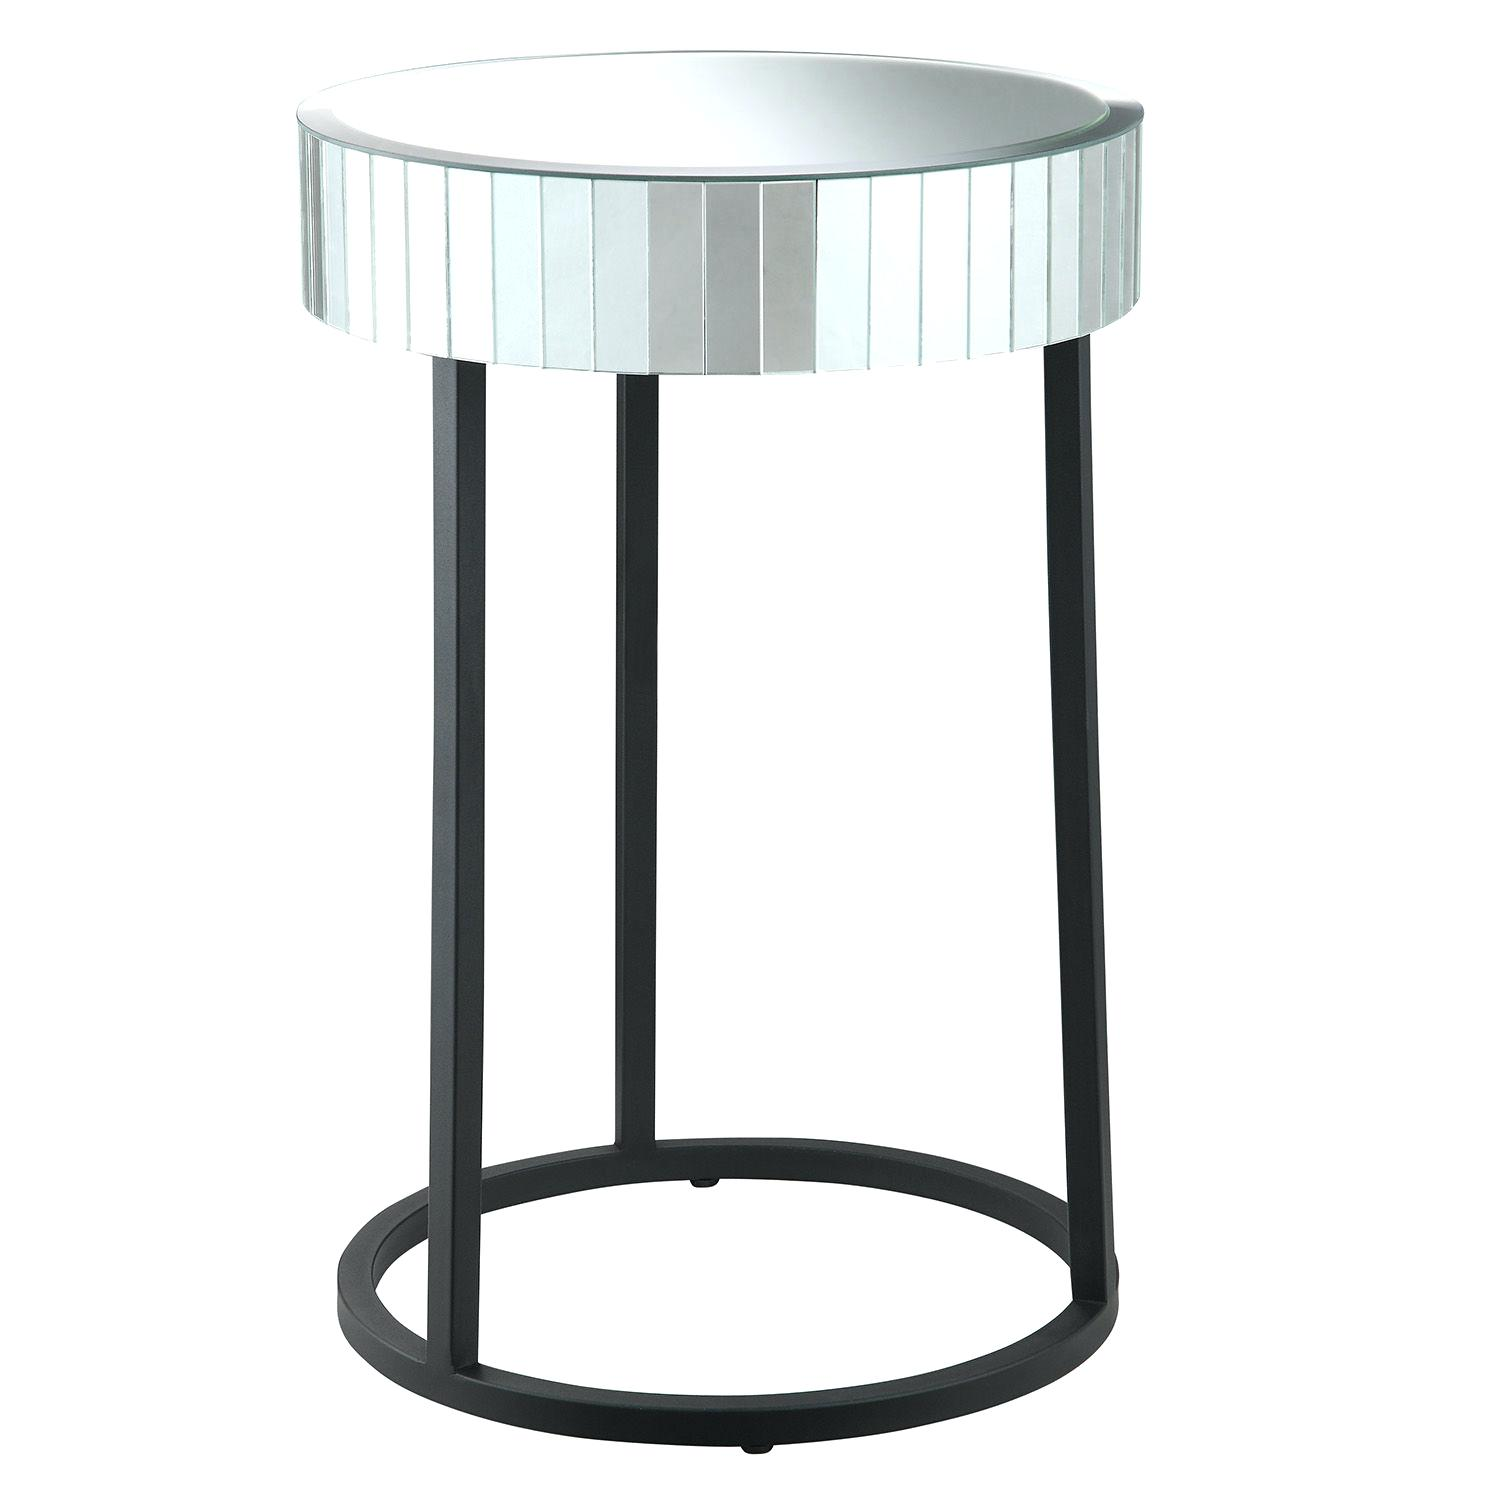 gold leaf iron mirror accent table round pier imports target white mirrored glass with drawer threshold wood furniture edmonton dining chair set marble end outdoor concrete side